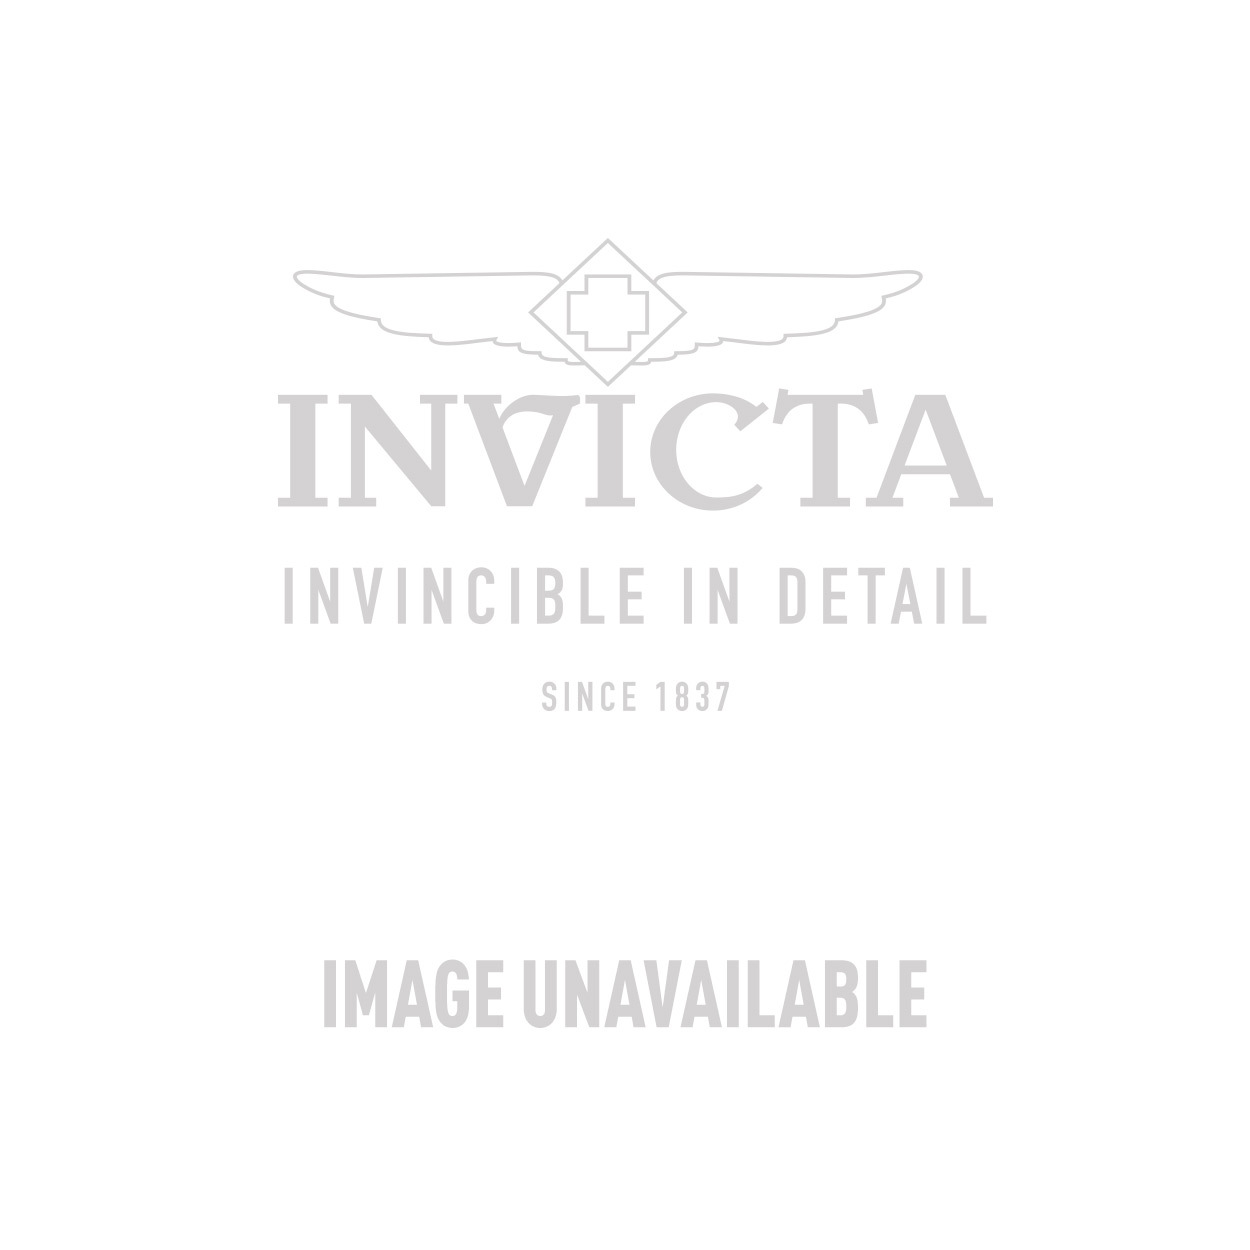 Invicta Bolt Magnum  Quartz Watch - Gold, Stainless Steel case Stainless Steel band - Model 20111